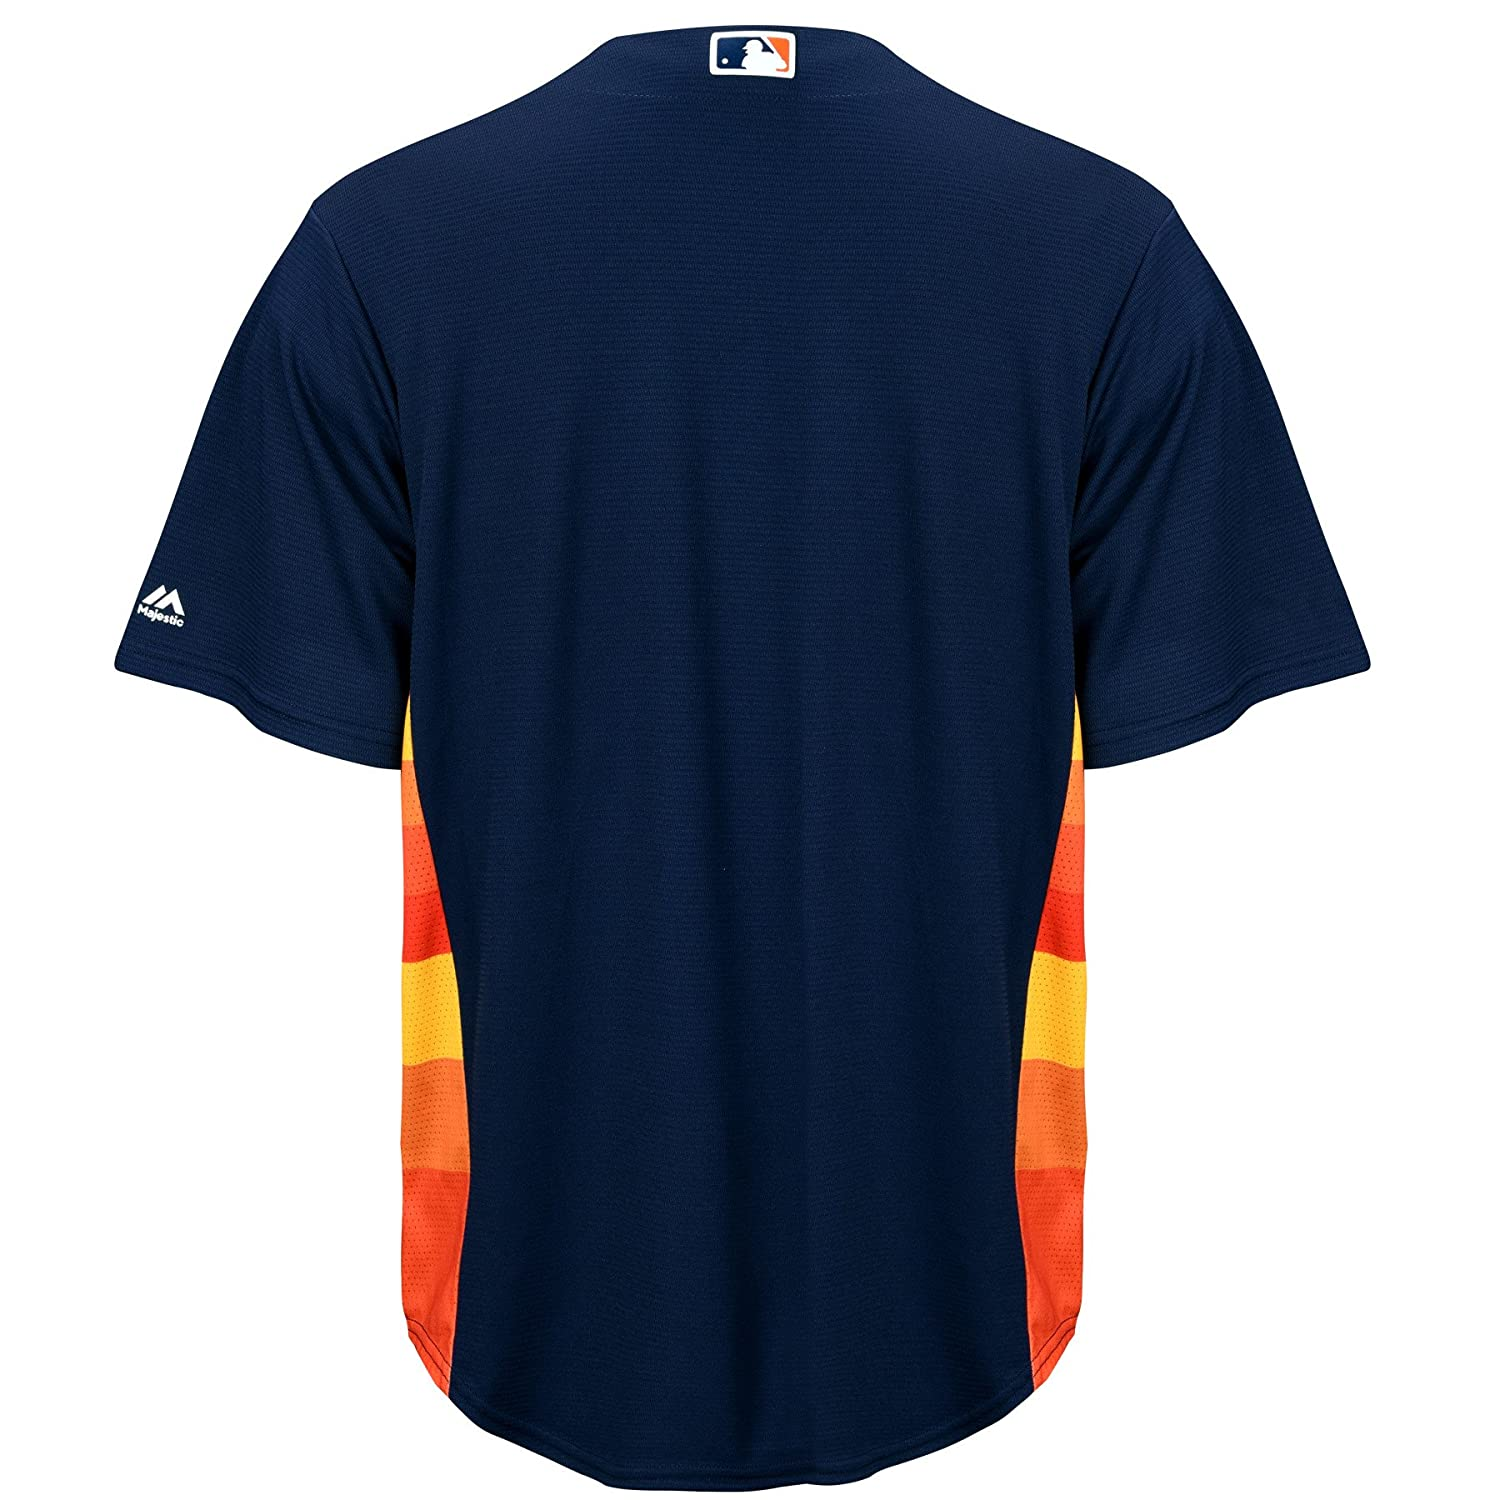 756a85c11 Amazon.com   Majestic Houston Astros Official Cool Base Alternate Jersey  Navy (Small)   Sports   Outdoors